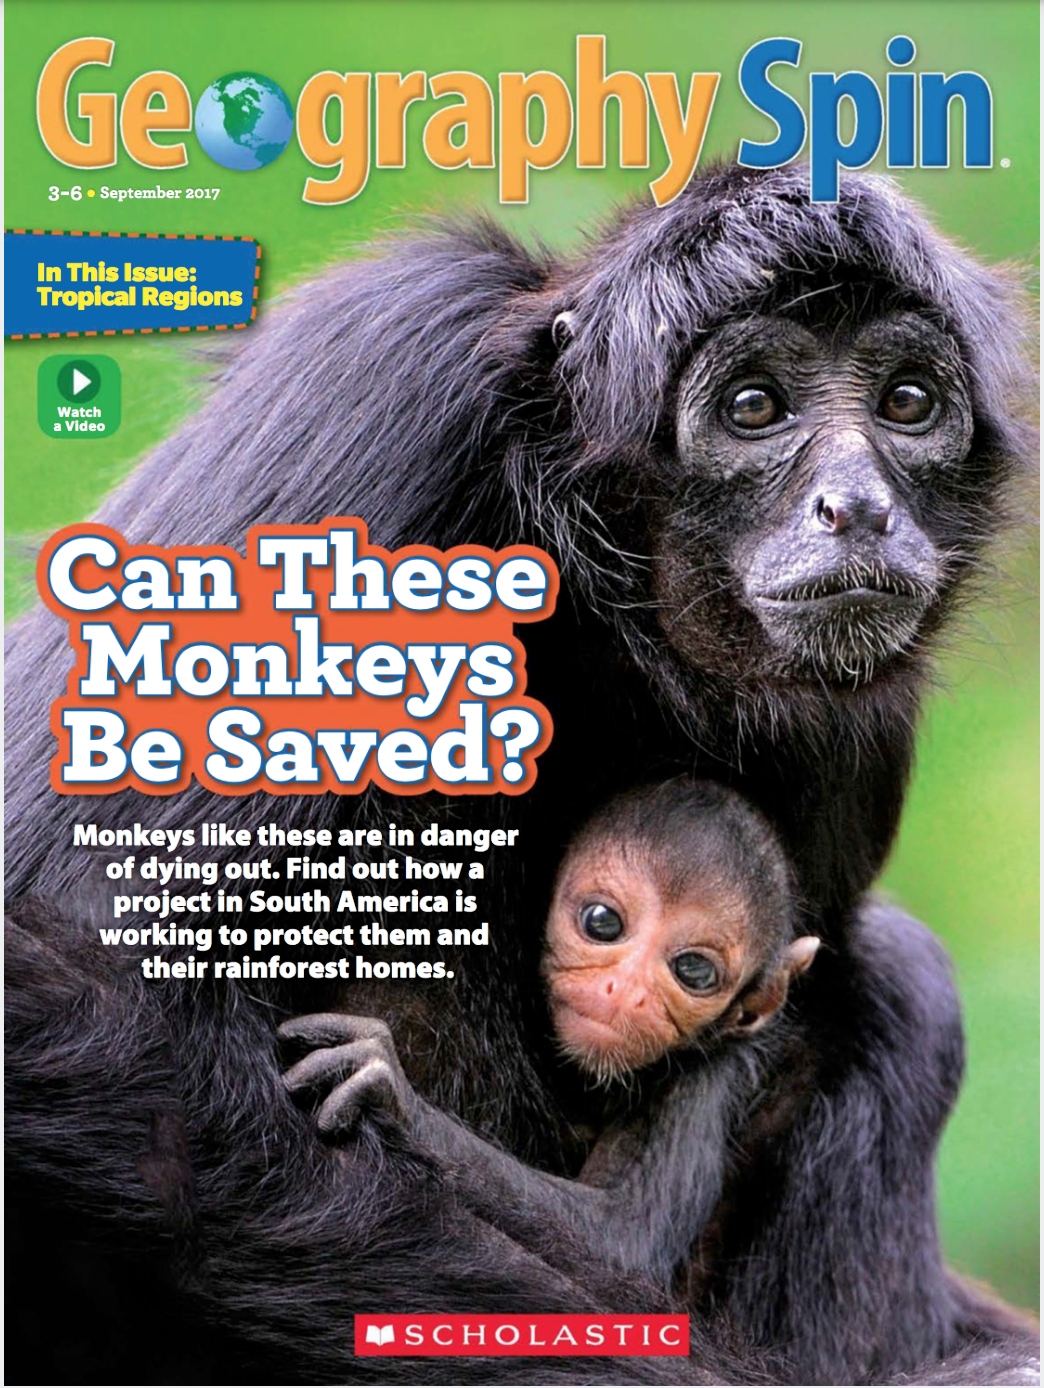 Geospin spider monkeys cover